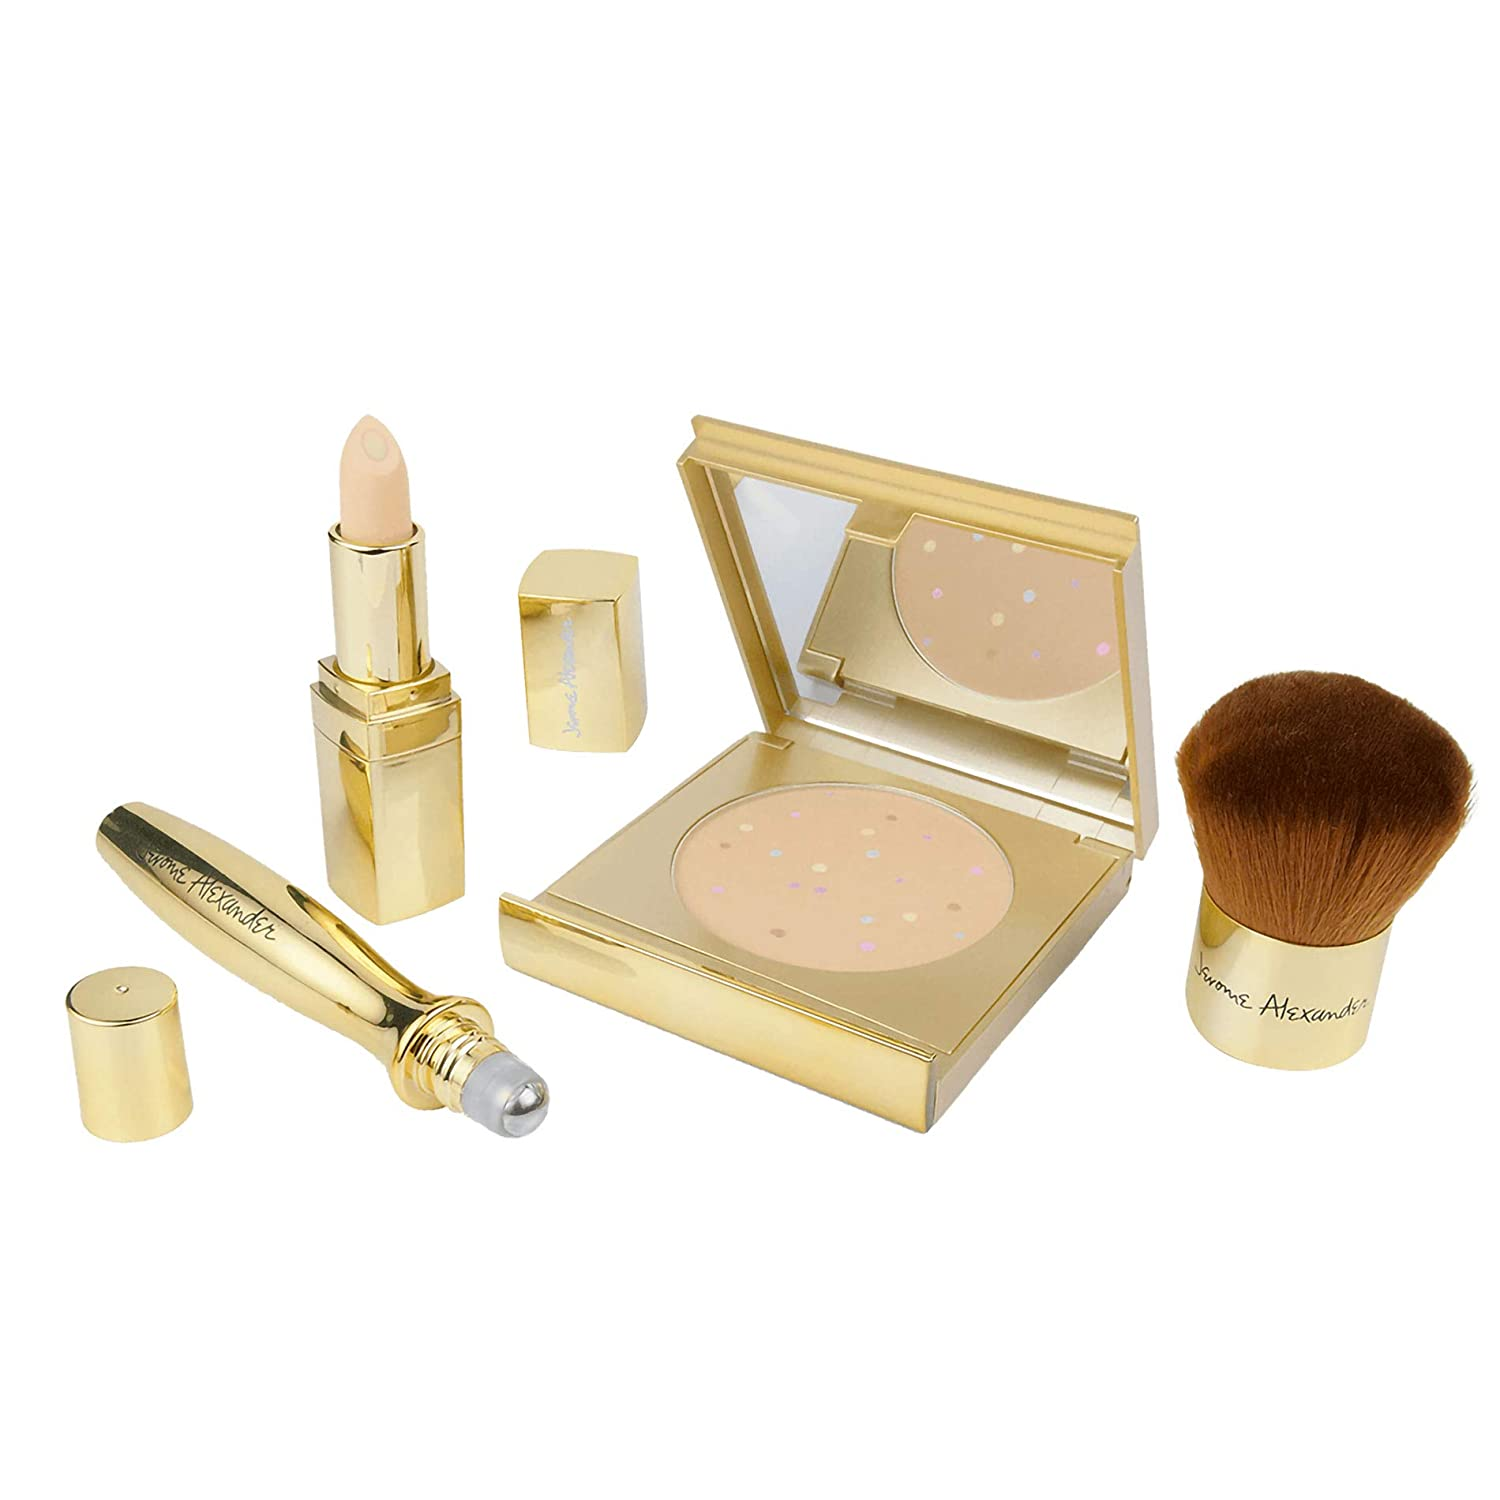 Jerome Alexander 50th Anniversary Holiday Makeup Gift Set - MagicMinerals Powder Gold Compact, Kabuki Brush, CoverAge Concealer and Rollerball - Limited Gold Edition 4-Piece Kit-Medium